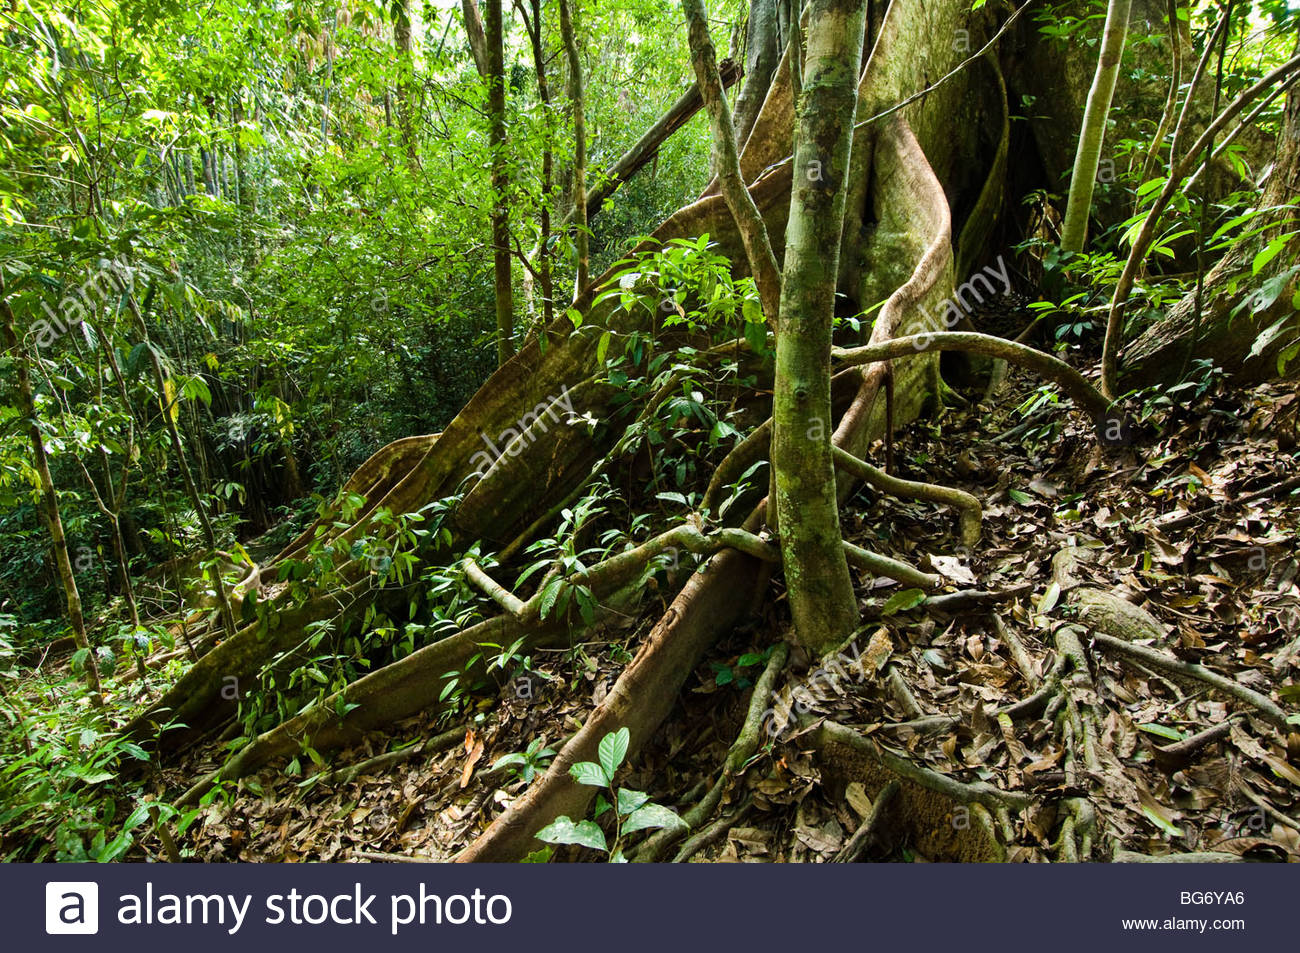 Buttress roots of an ancient banyan tree in the tropical rainforest. - Stock Image